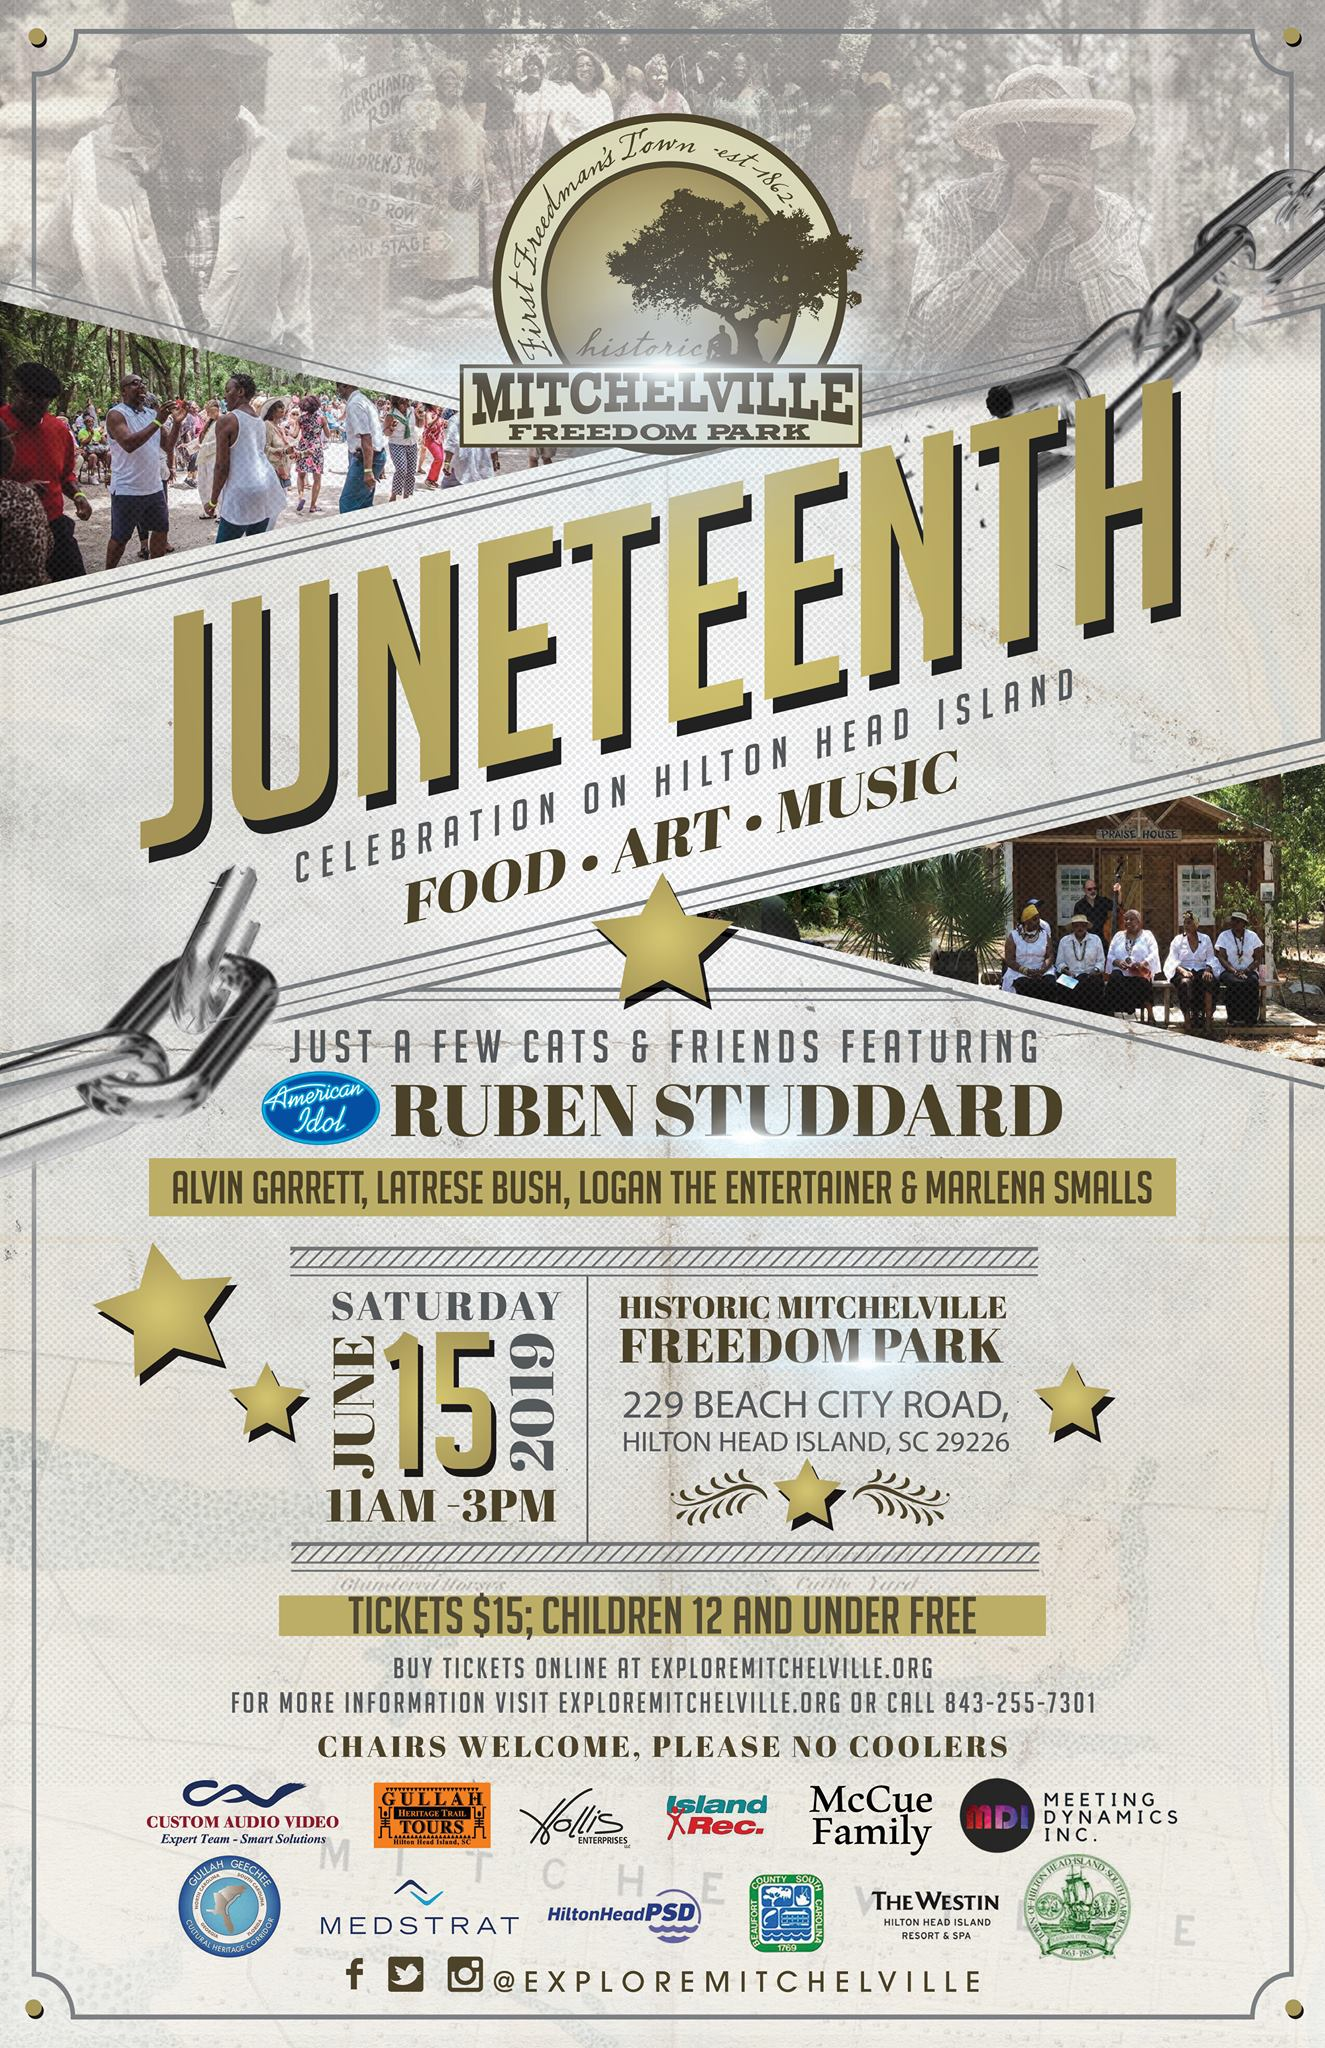 58961761_2508467915839160_7081281746792087552_o Celebrating Juneteenth in South Carolina: Events to Attend this June